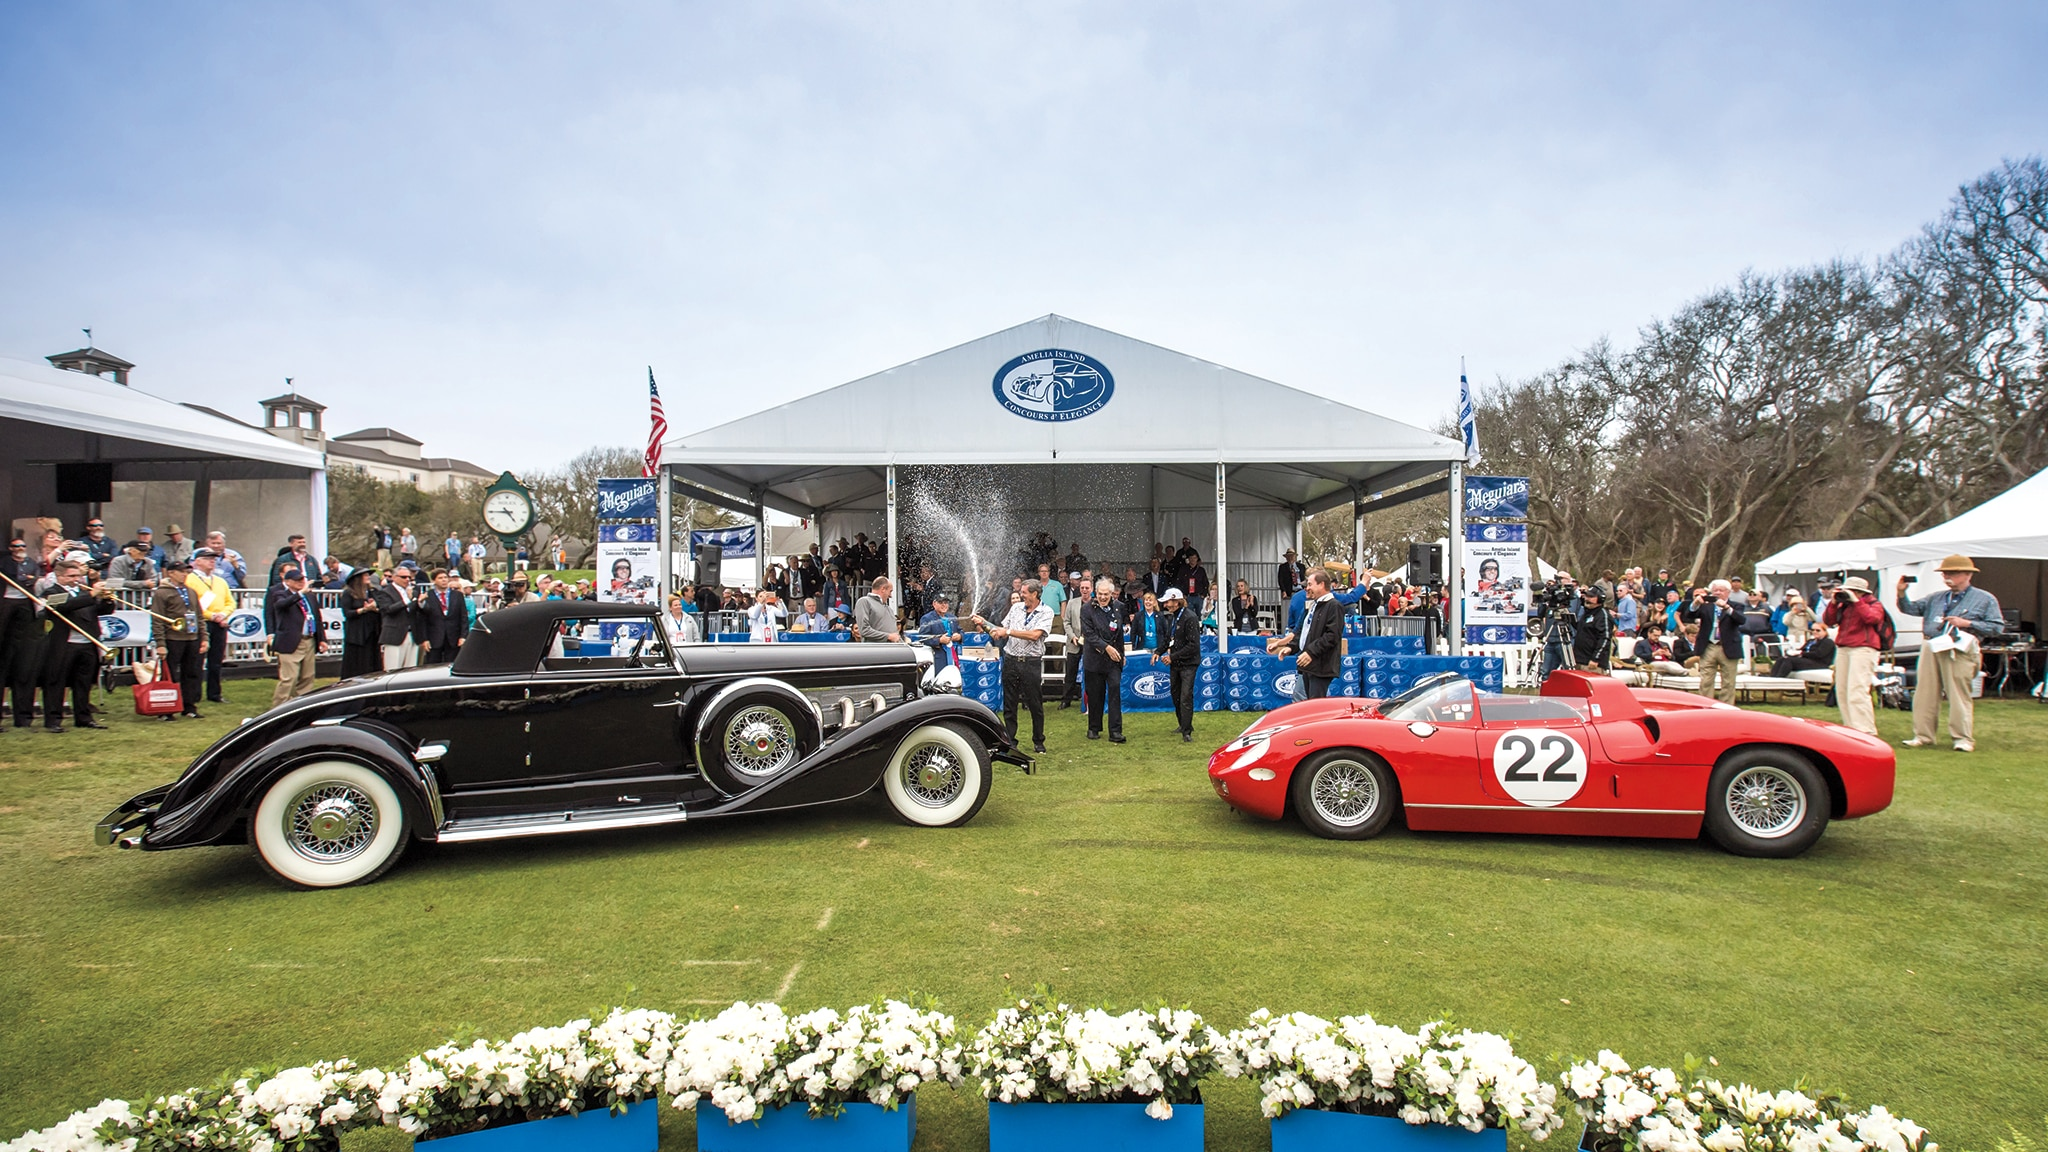 fb6ff4165 The 2019 Amelia Island Concours Is Going to Be Epic | Automobile ...